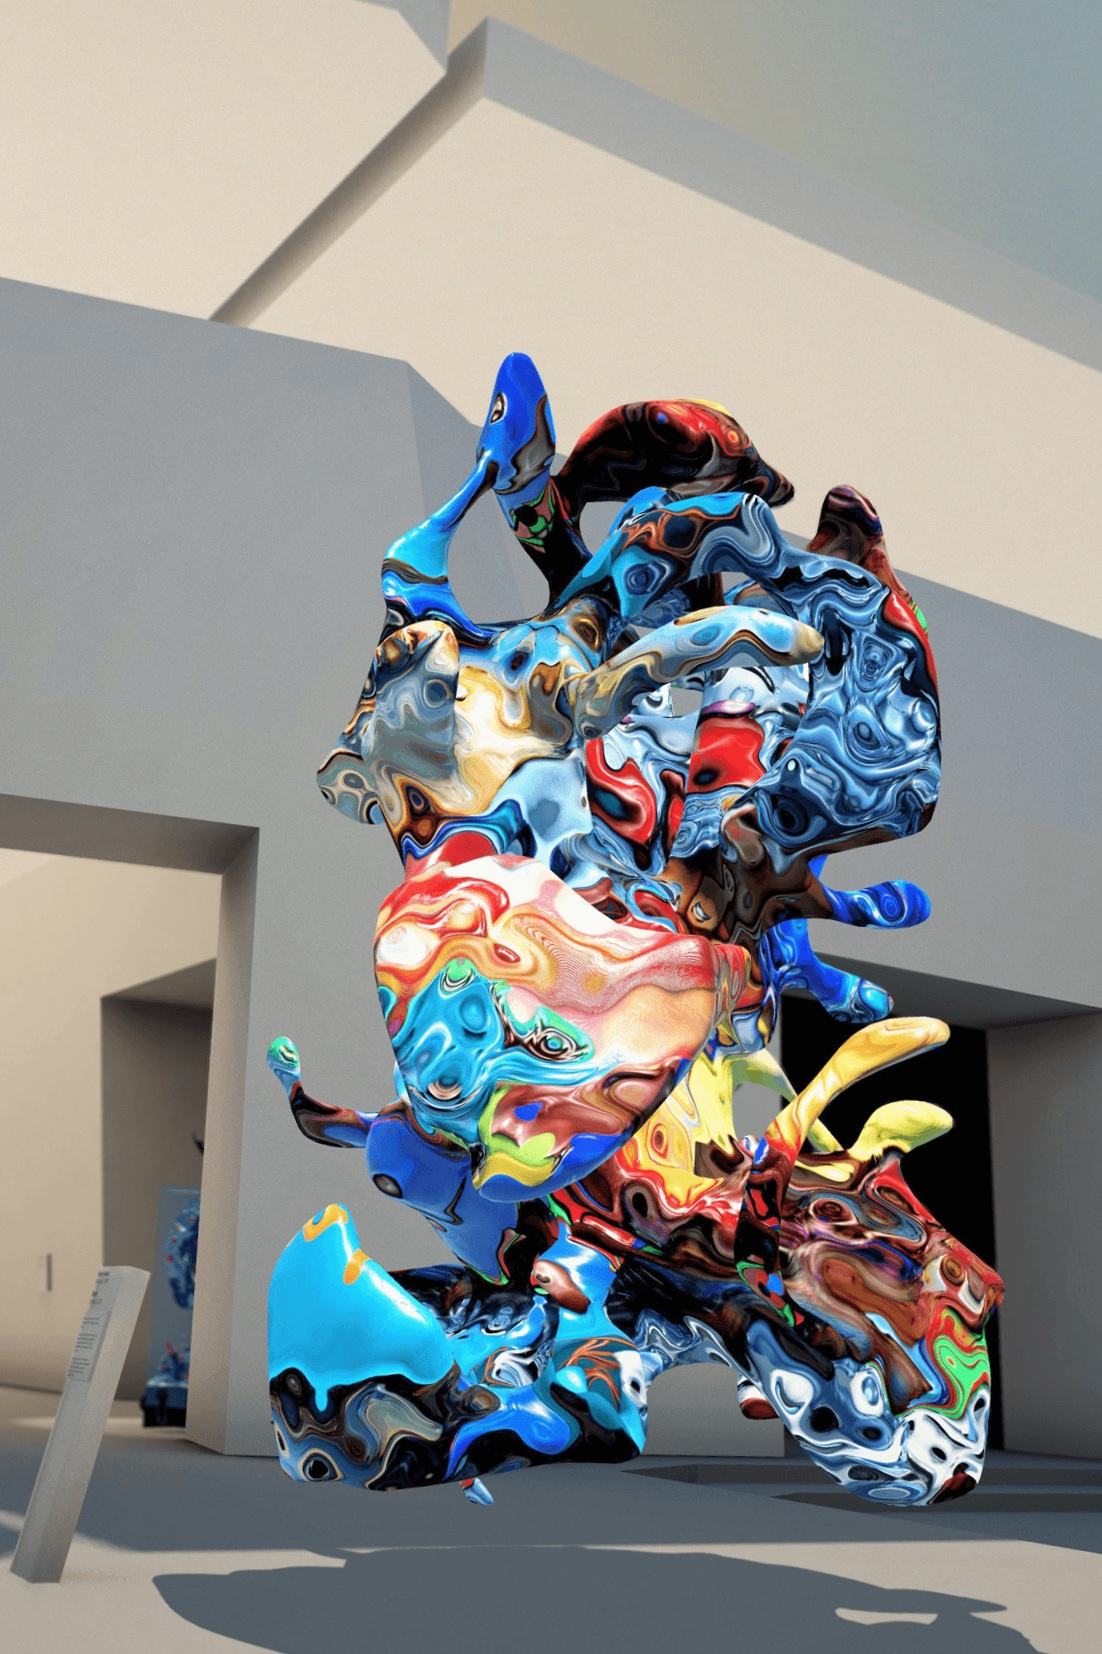 A Blort sculpture from Mack's  Blortasia , on display in the Museum of Other Realities